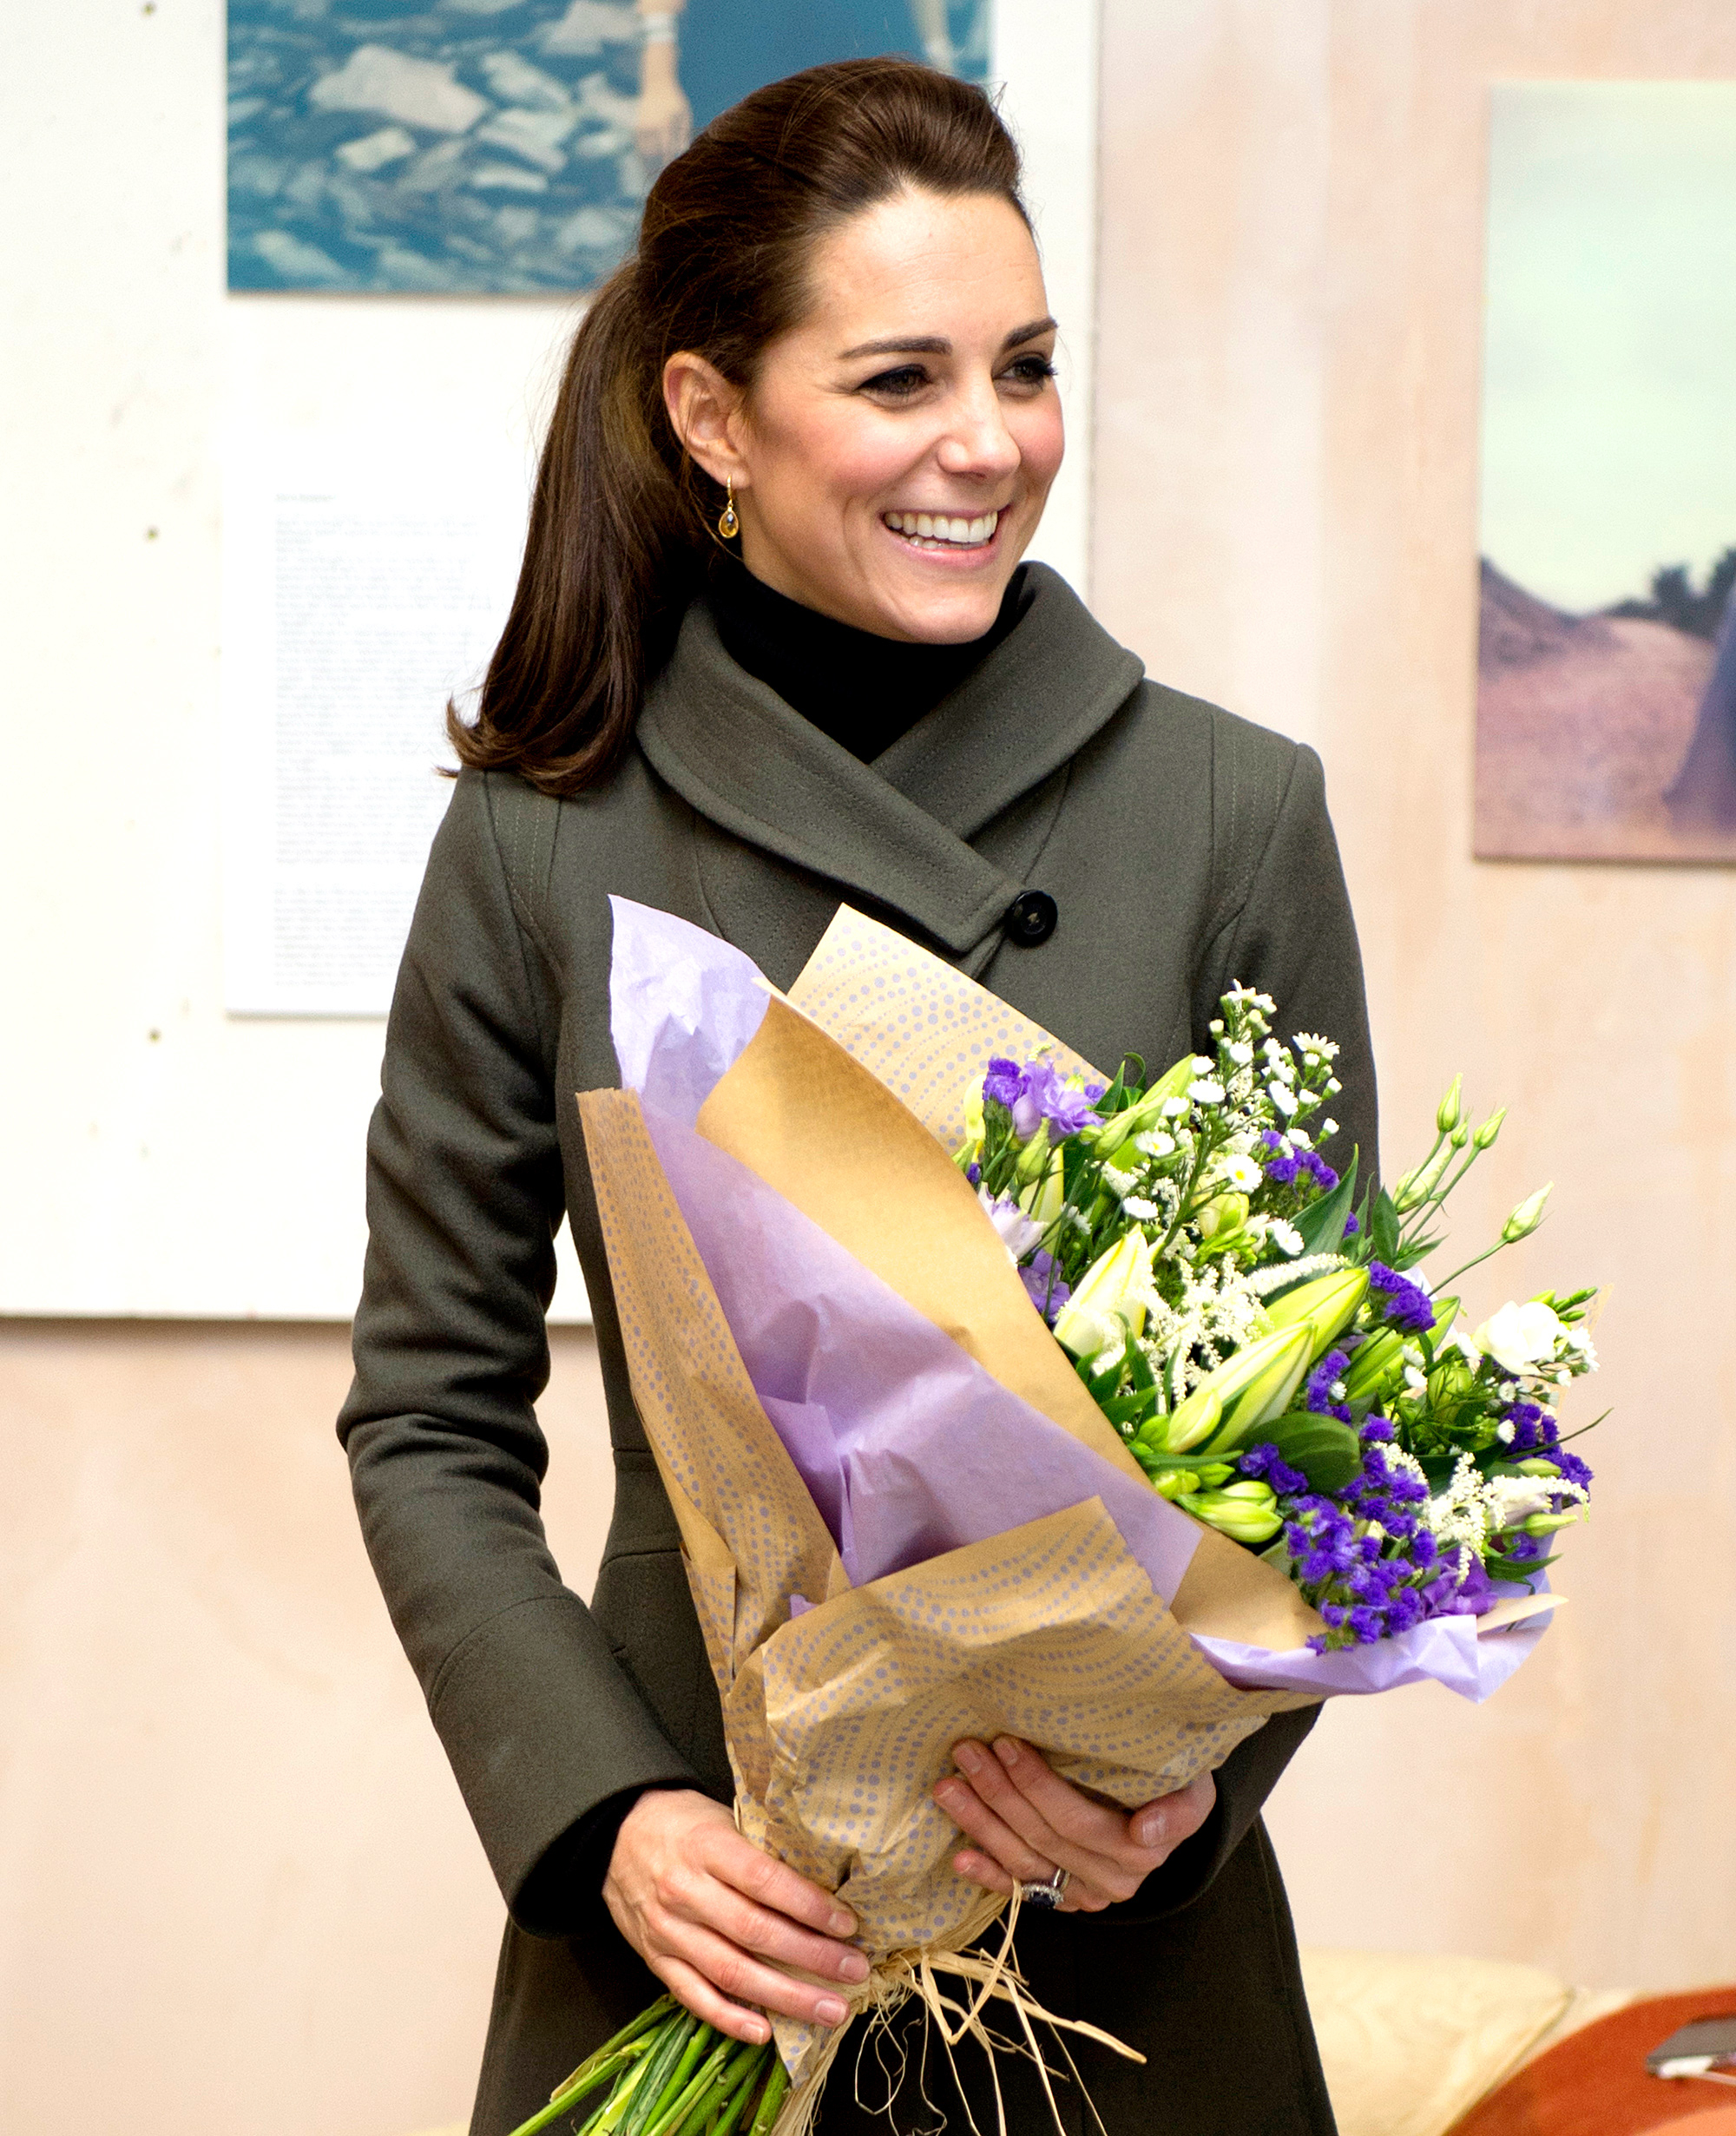 Kate Middleton receives a bouquet of flowers as she visits a photographic exhibition entitled